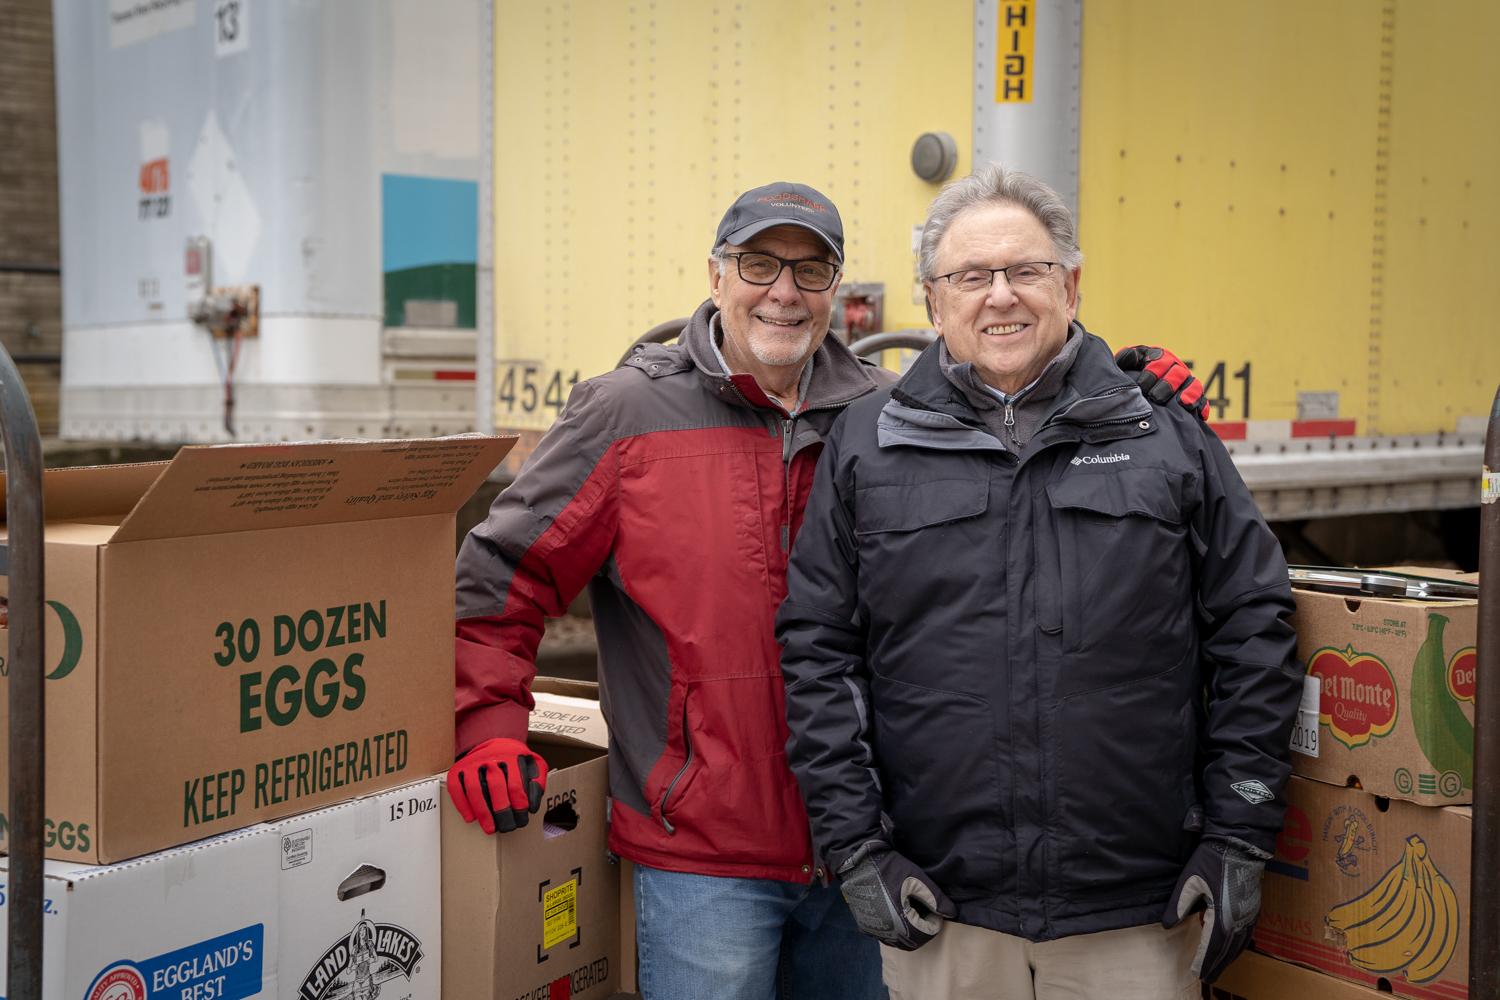 Andy Stern and Peter Chenette Retail Rescue